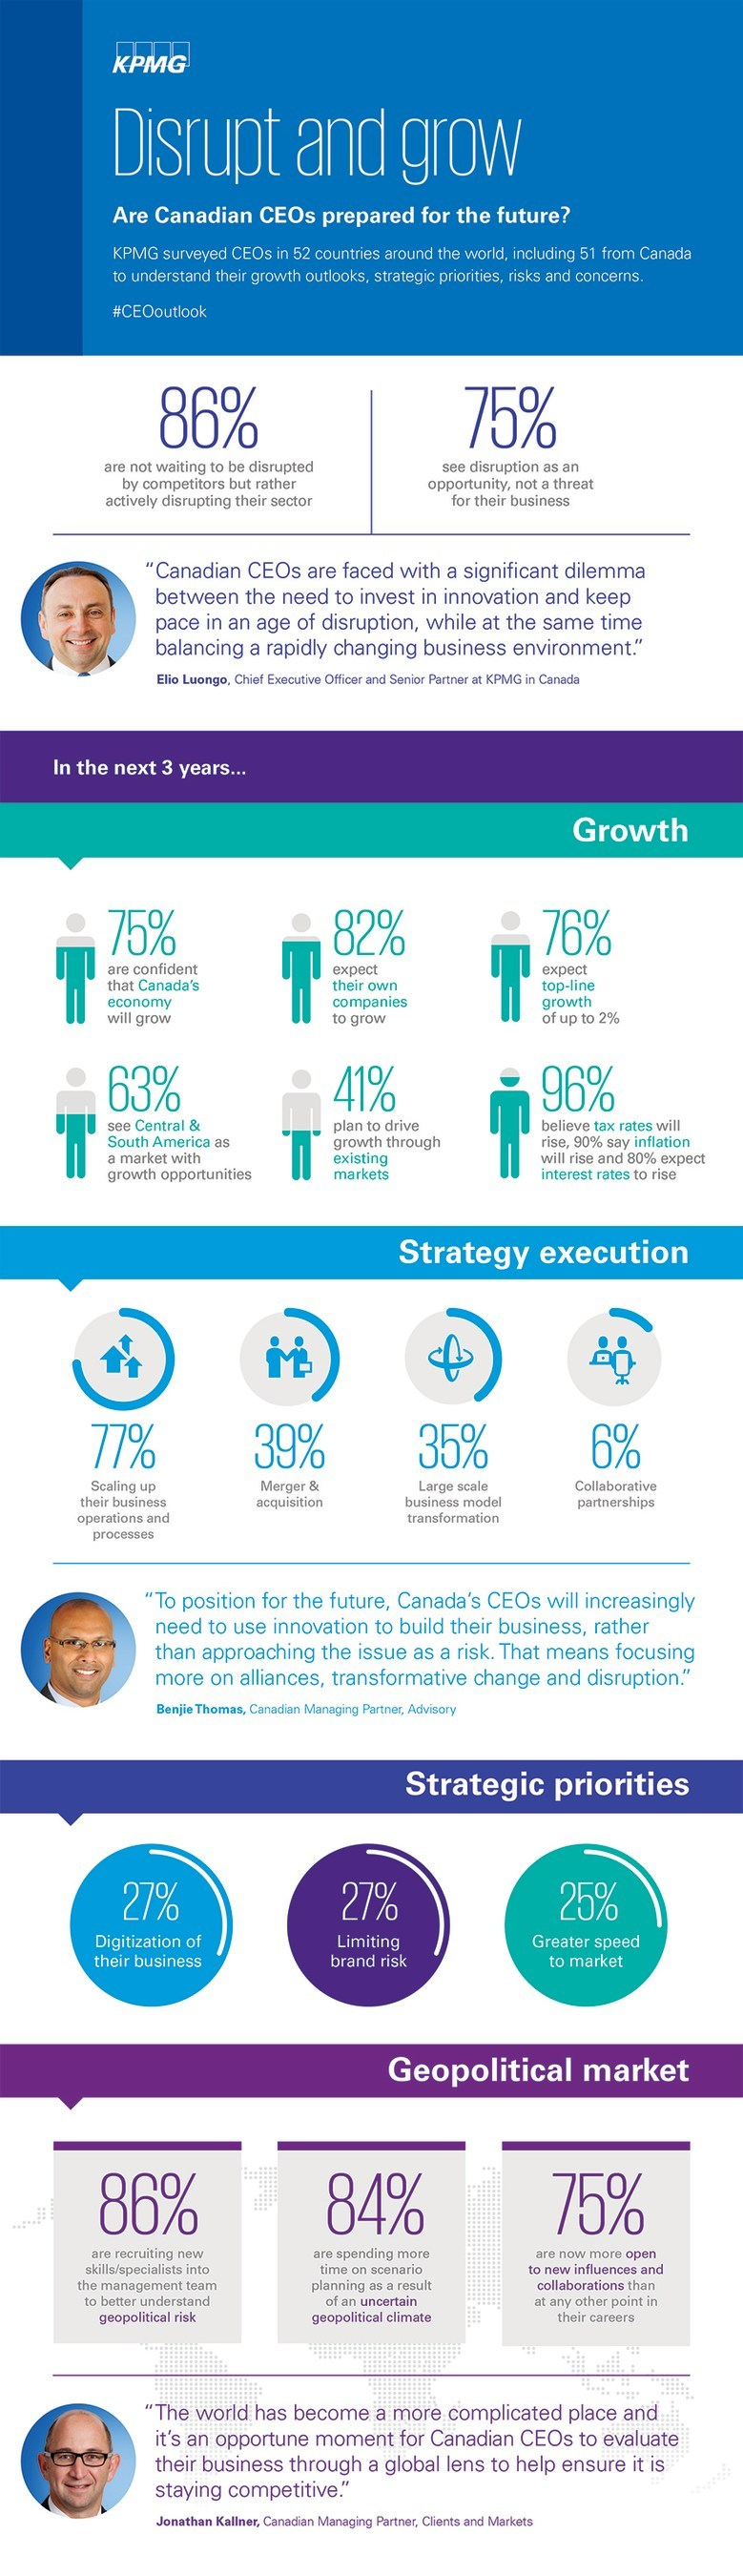 Disrupt and grow: 2017 Canadian CEO Outlook (CNW Group/KPMG LLP)